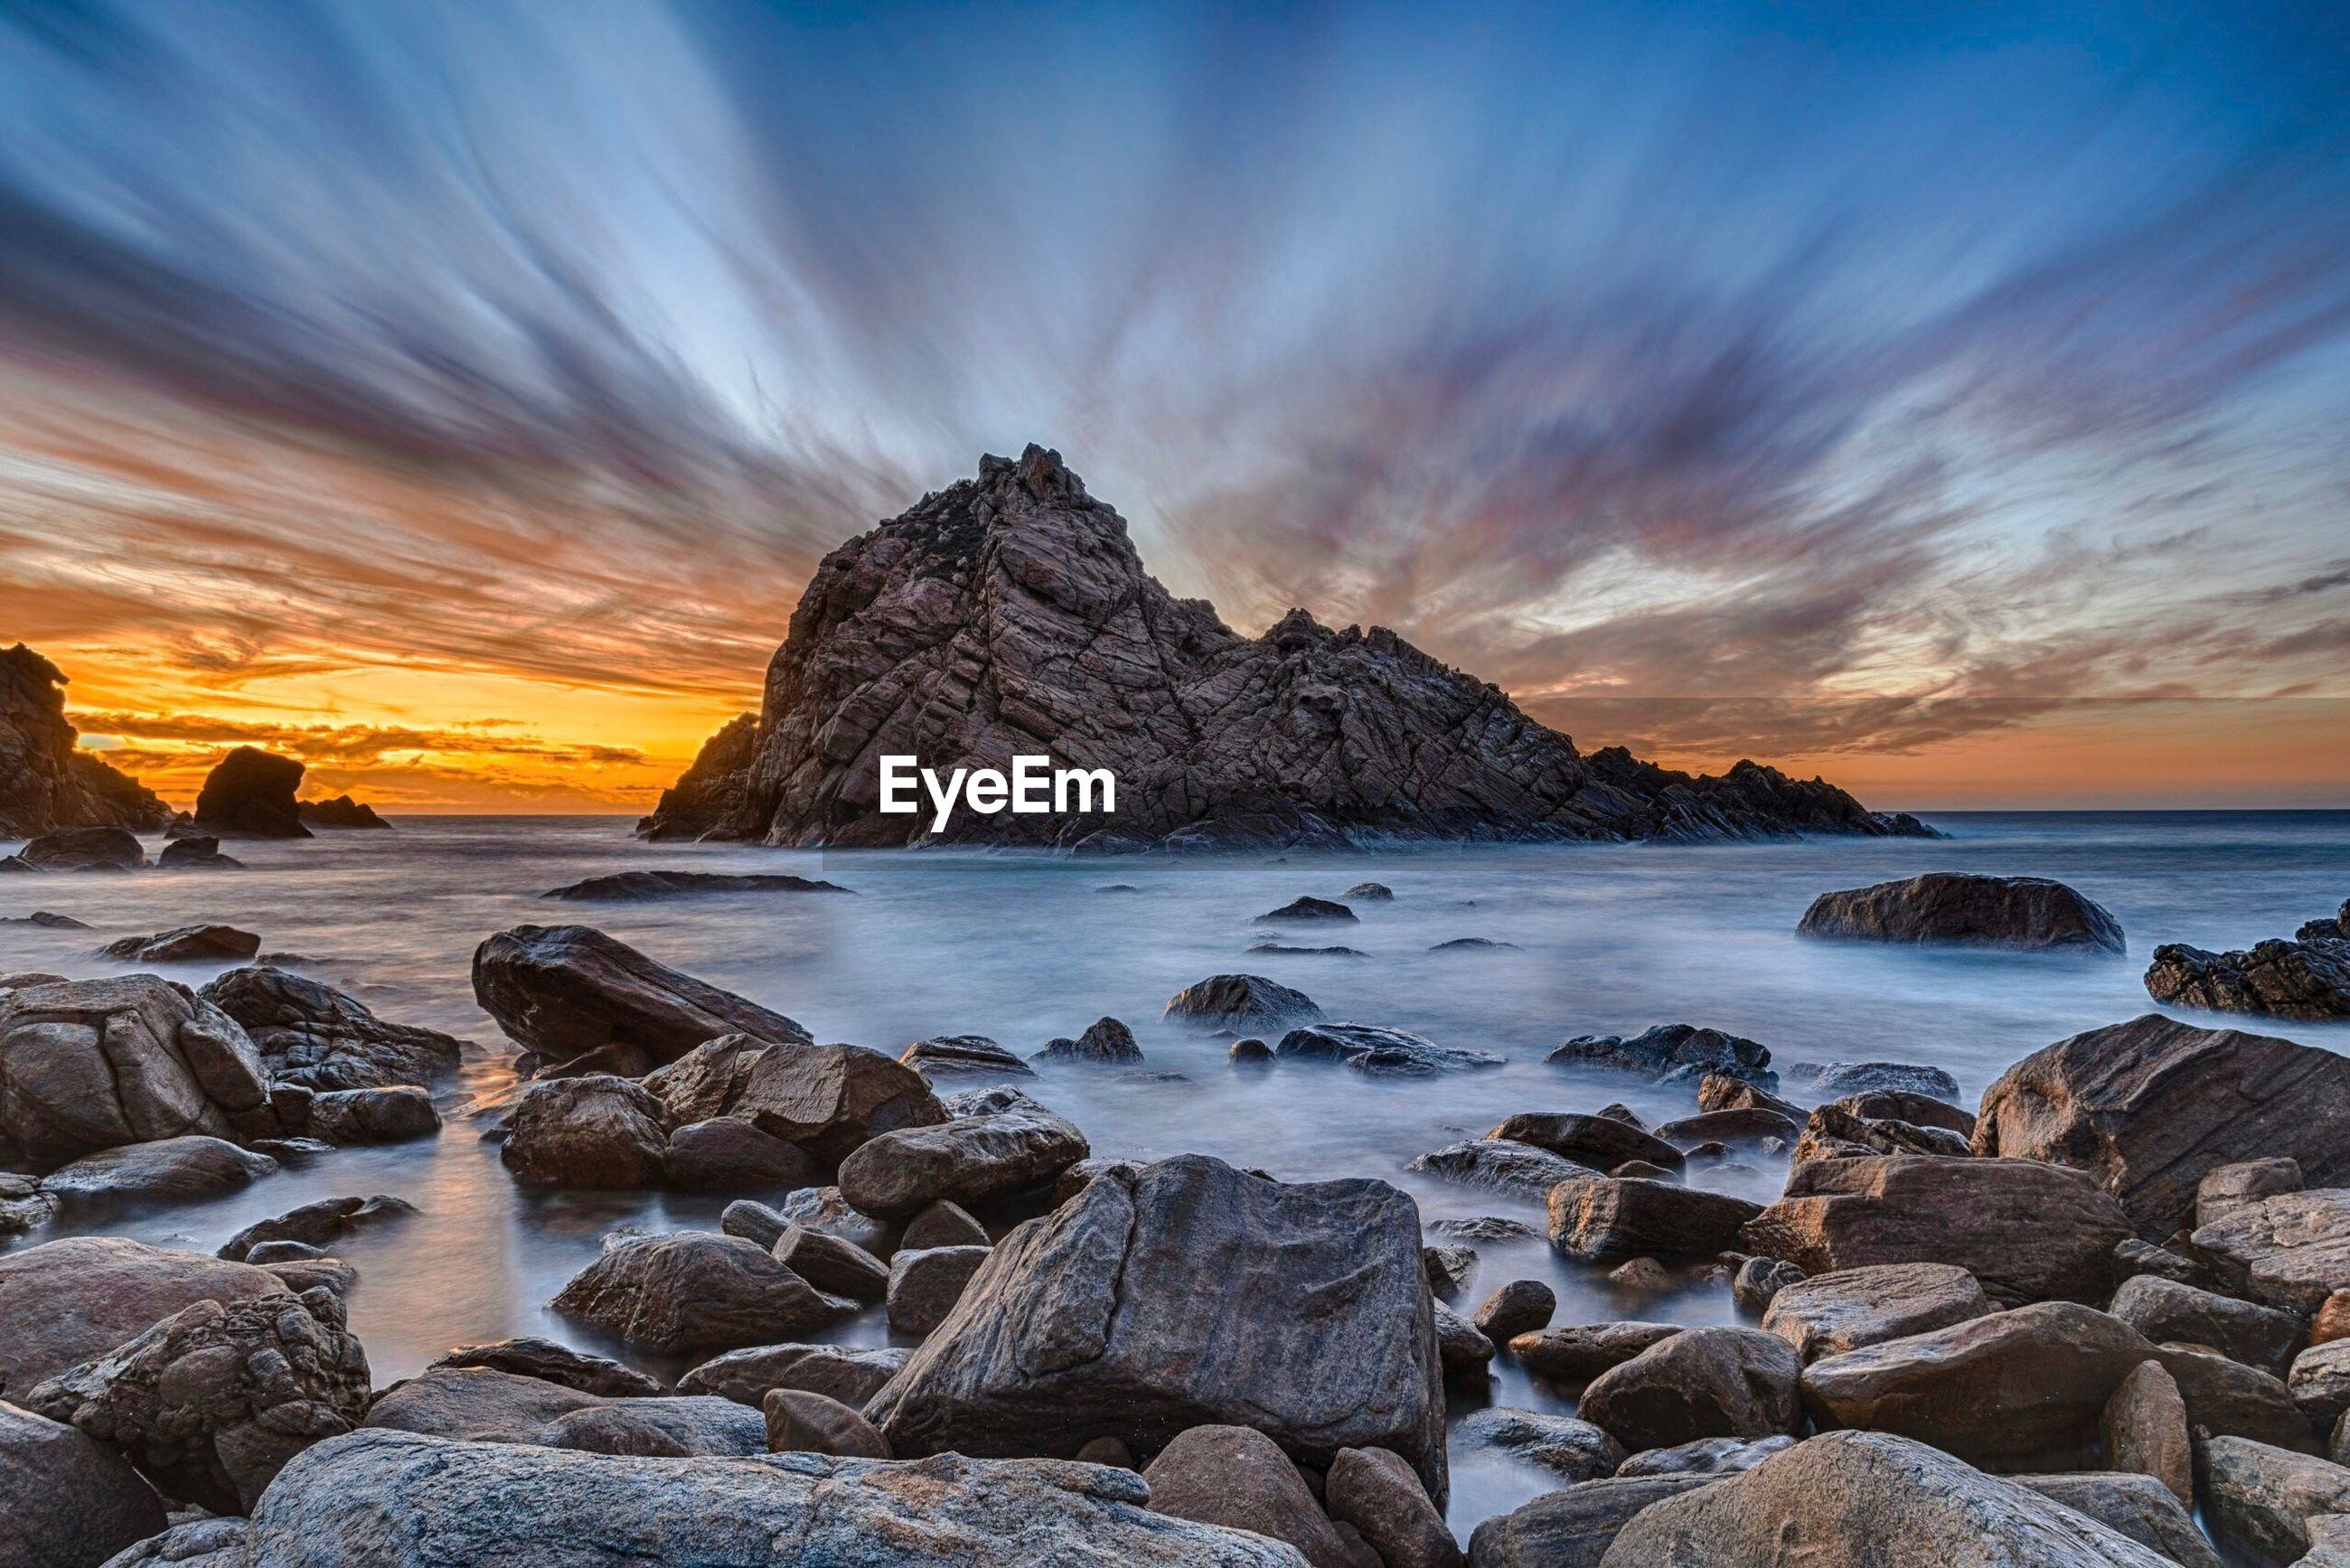 Scenic view of sugarloaf rock against cloudy sky